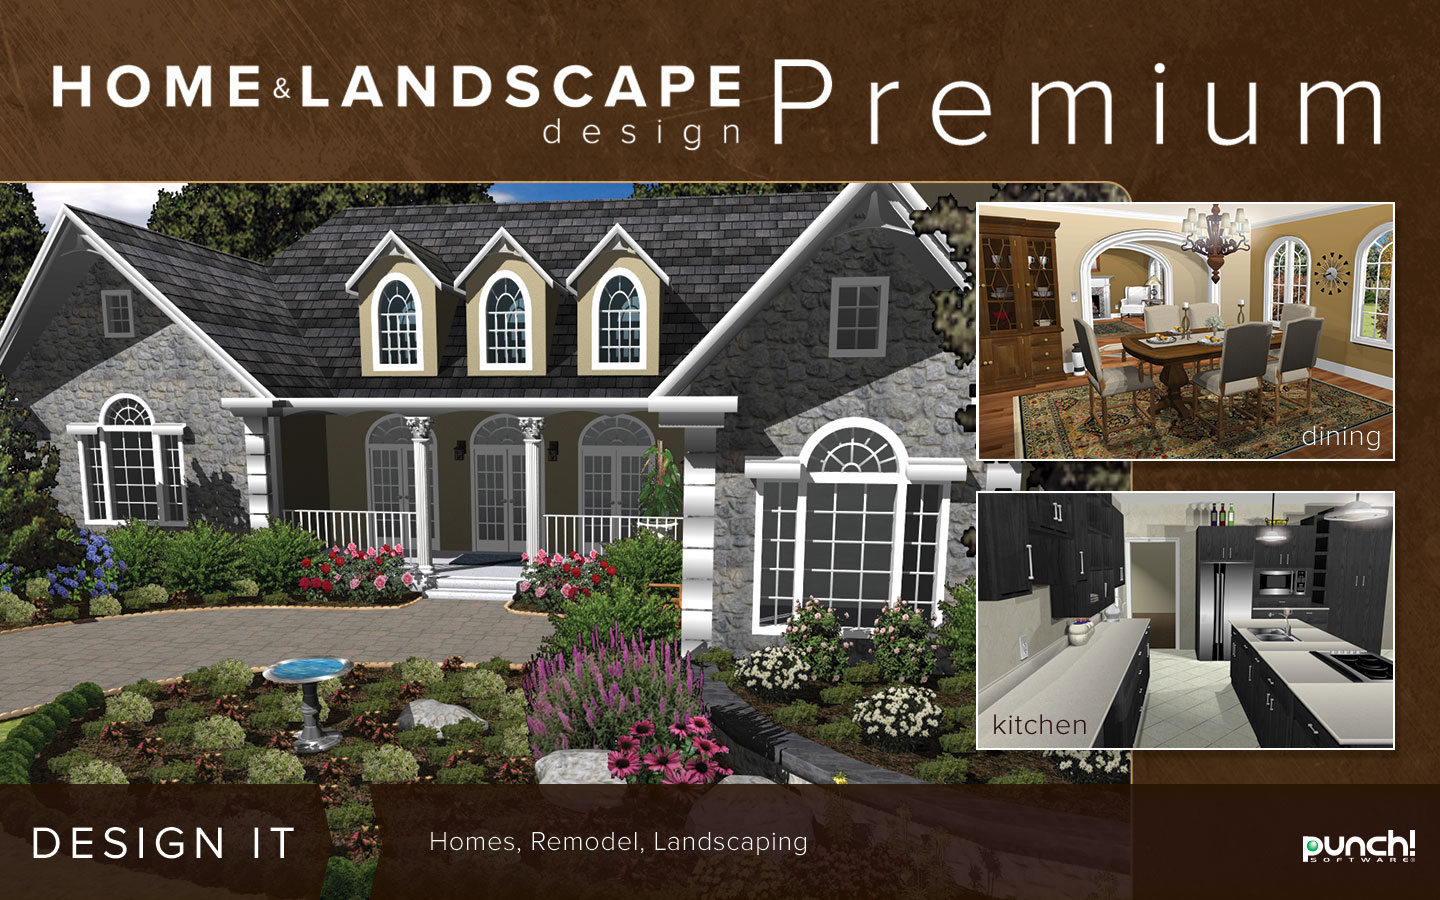 punch! home & landscape design premium v18 | #1 selling logo